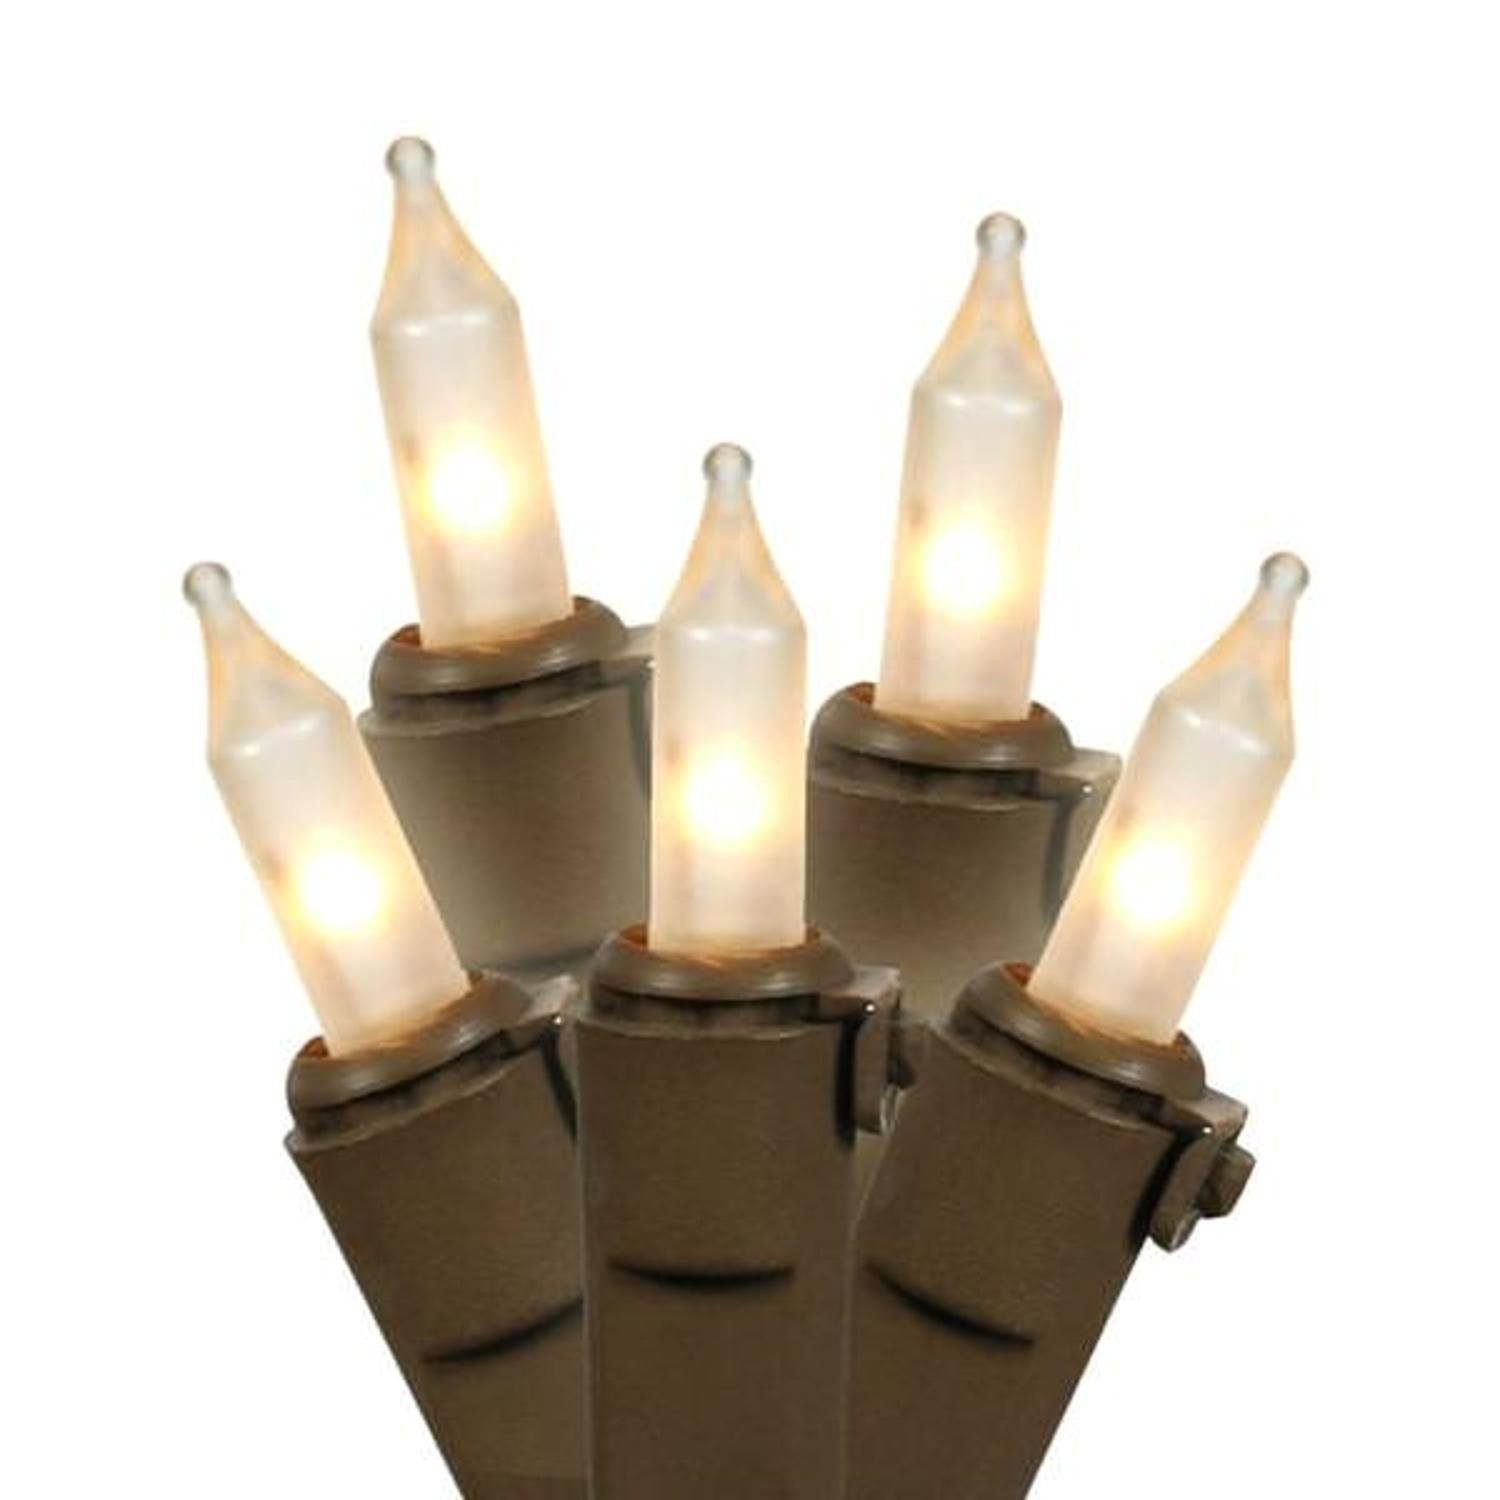 Set of 50 Frosted White Mini Christmas Lights 6'' Spacing - Brown Wire